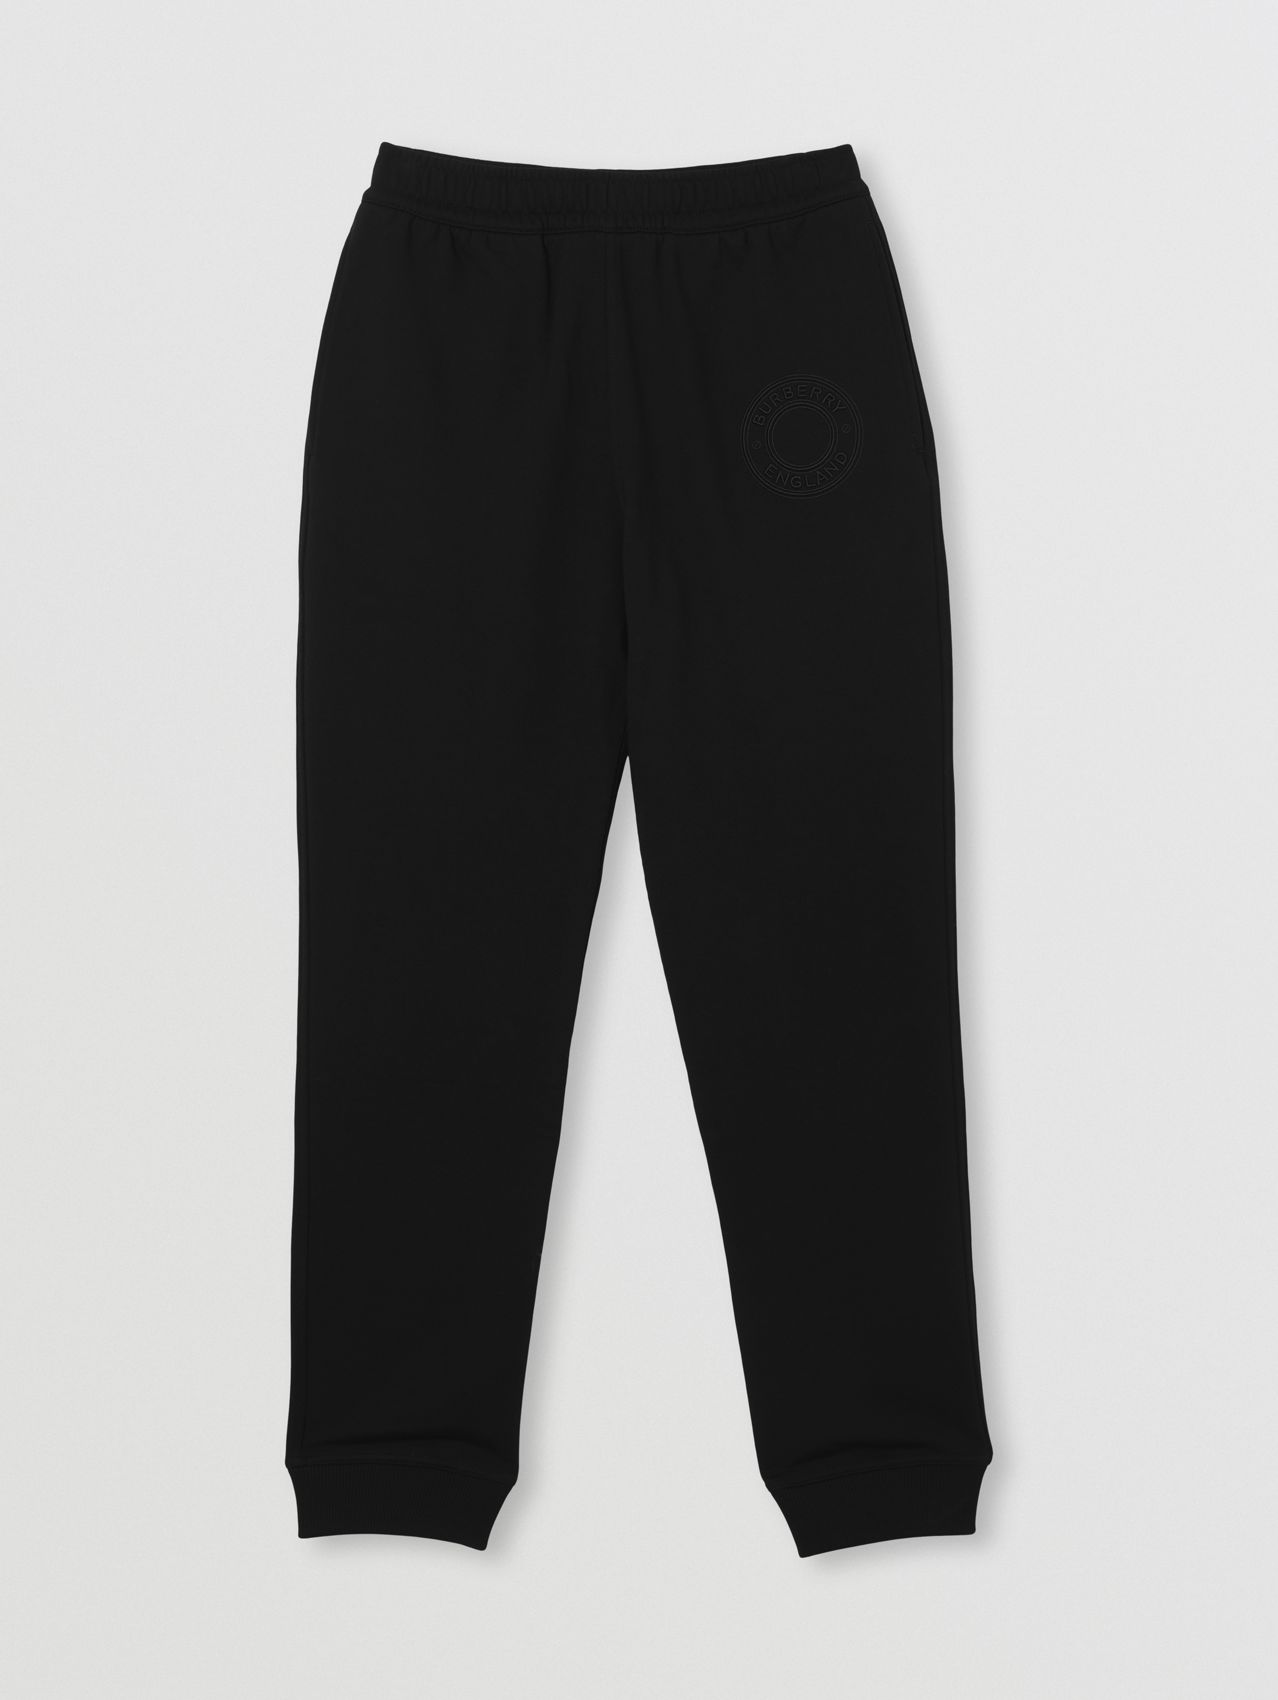 Embroidered Logo Graphic Cotton Jogging Pants in Black